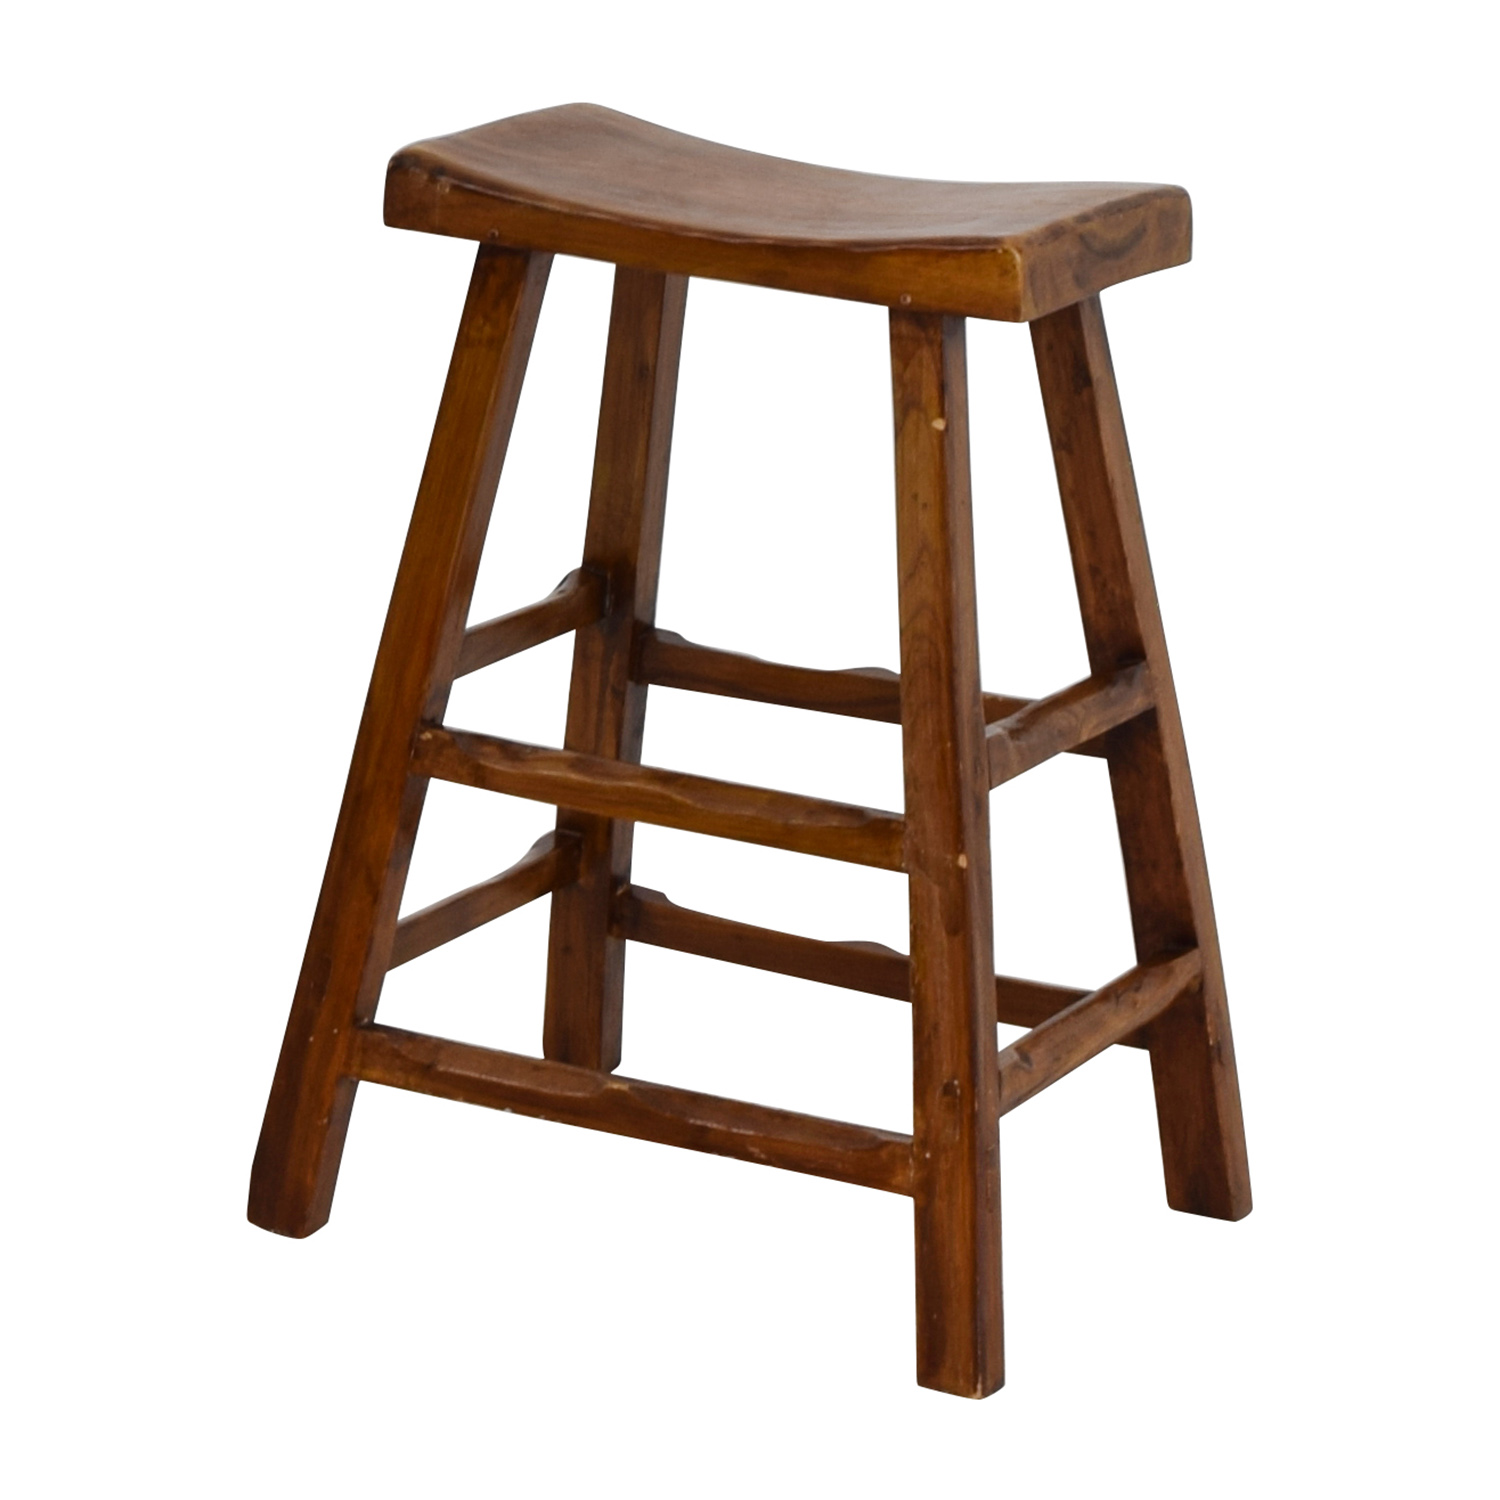 55 Off Rustic Wood Saddle Seat Counter Stool Chairs